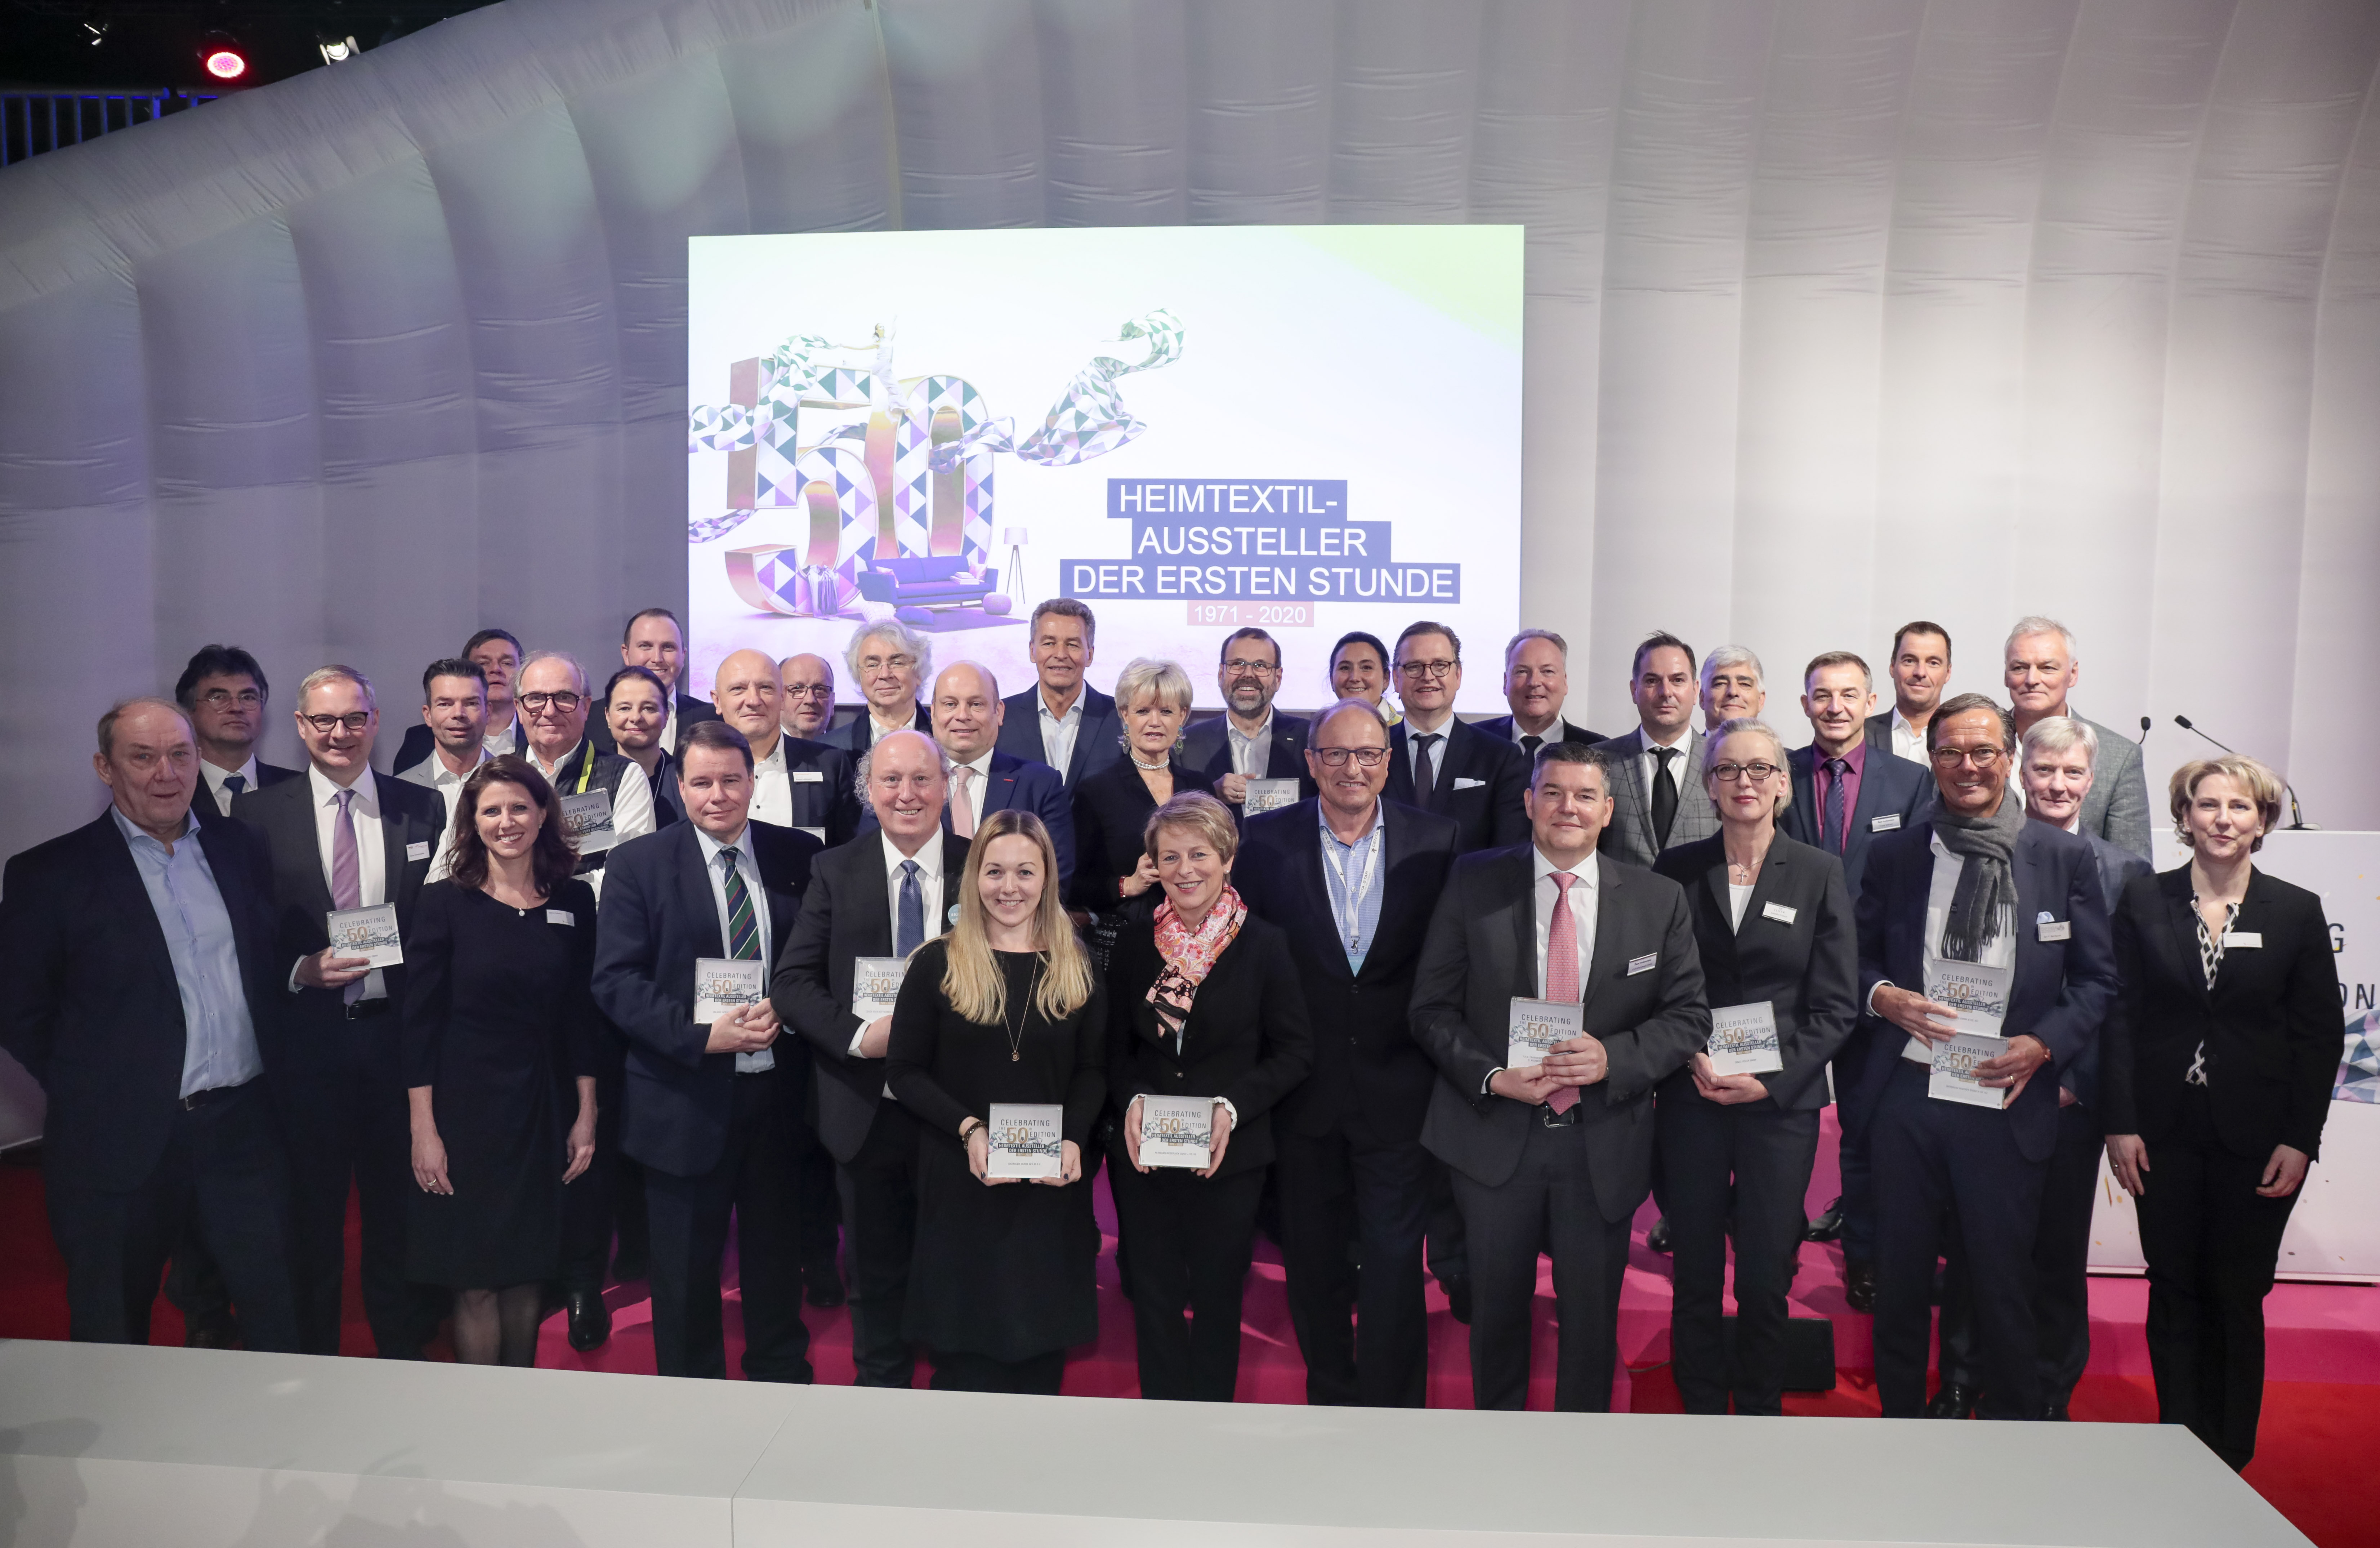 Awards ceremony for exhibitors from the very beginning / Group photo